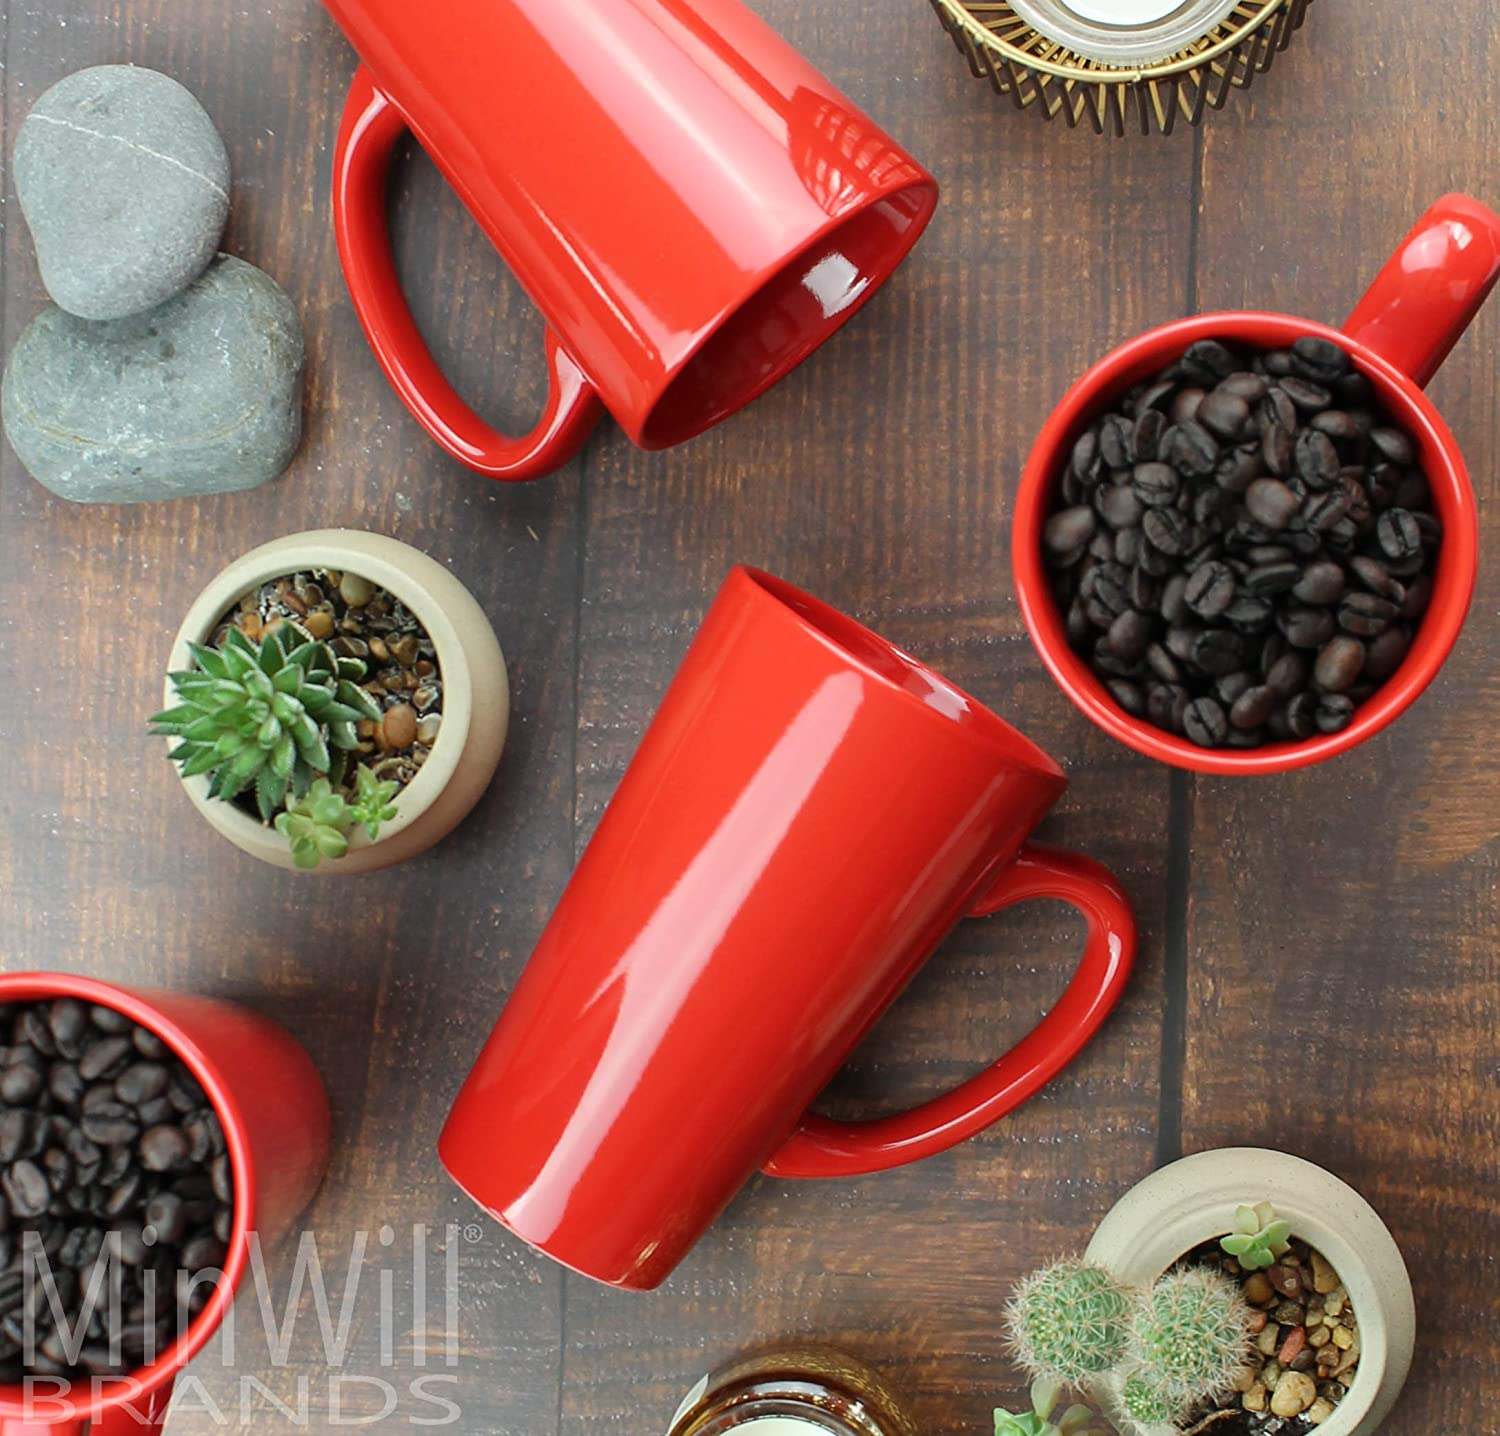 16 Ounce MinWill Brands Ceramic Tall Funnel Cup Coffee Mugs with Pan Scraper Red, 4-Pack